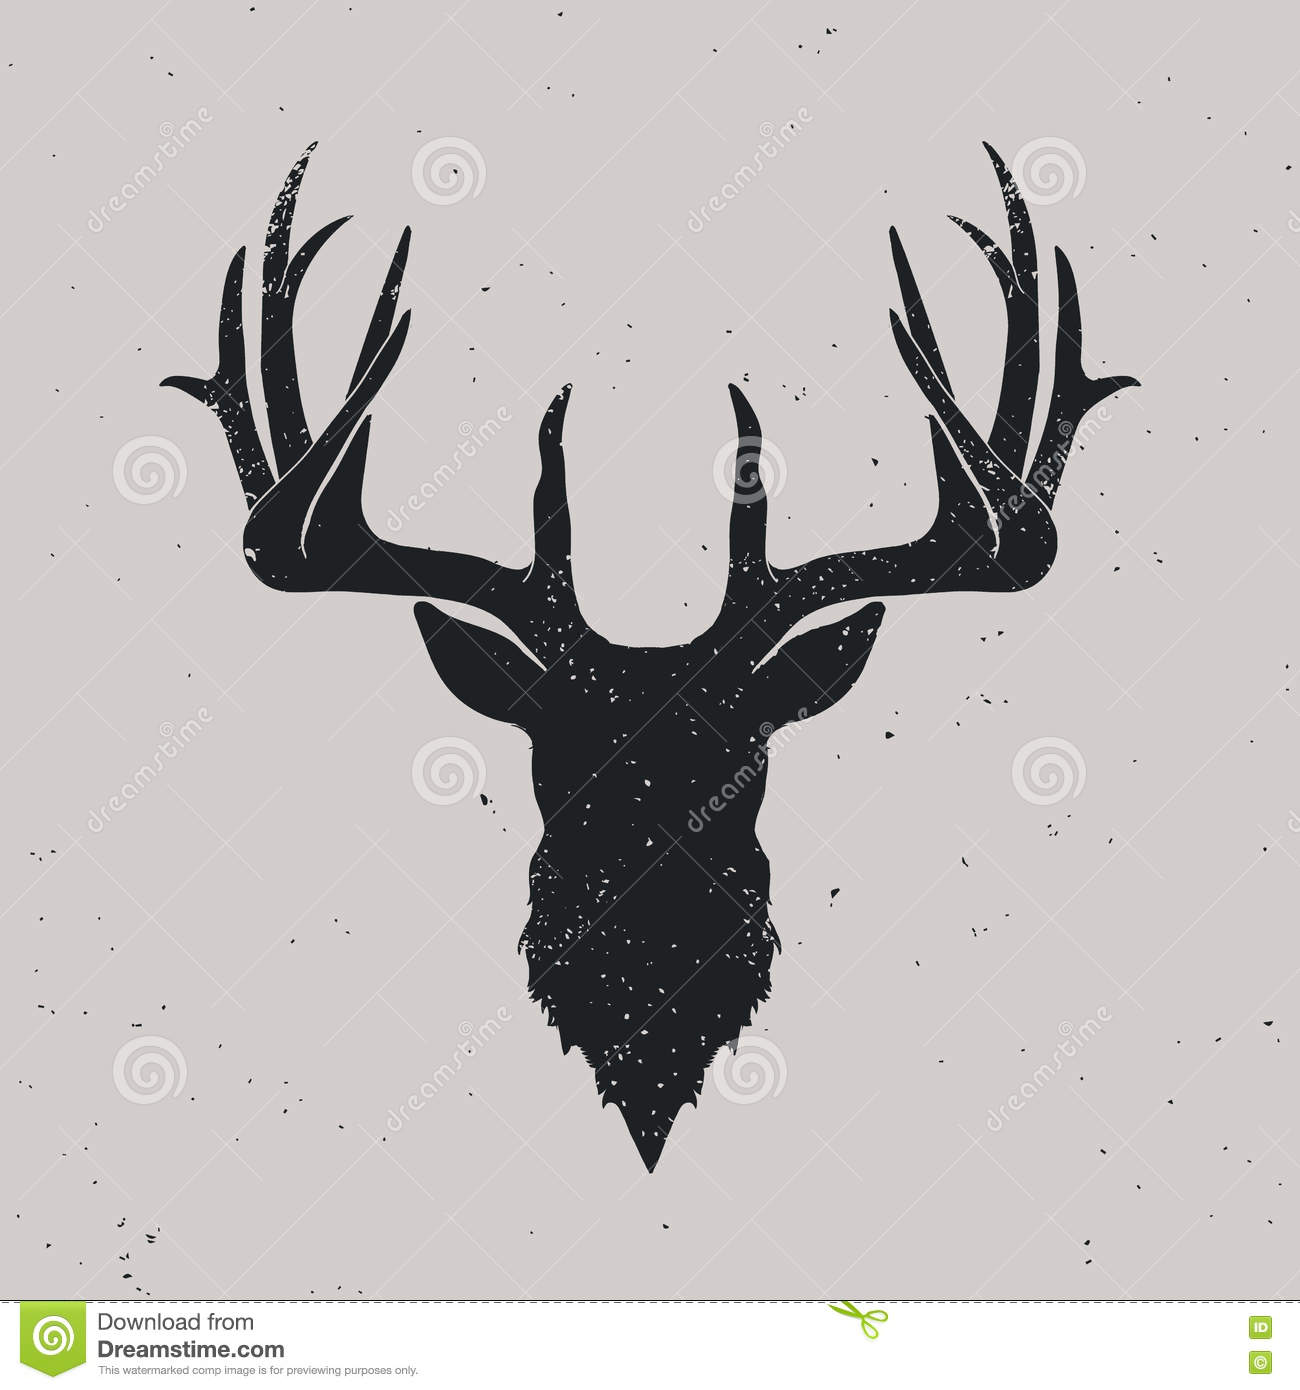 Deer Head Silhouette Stock Vector Illustration Of Background 71823361